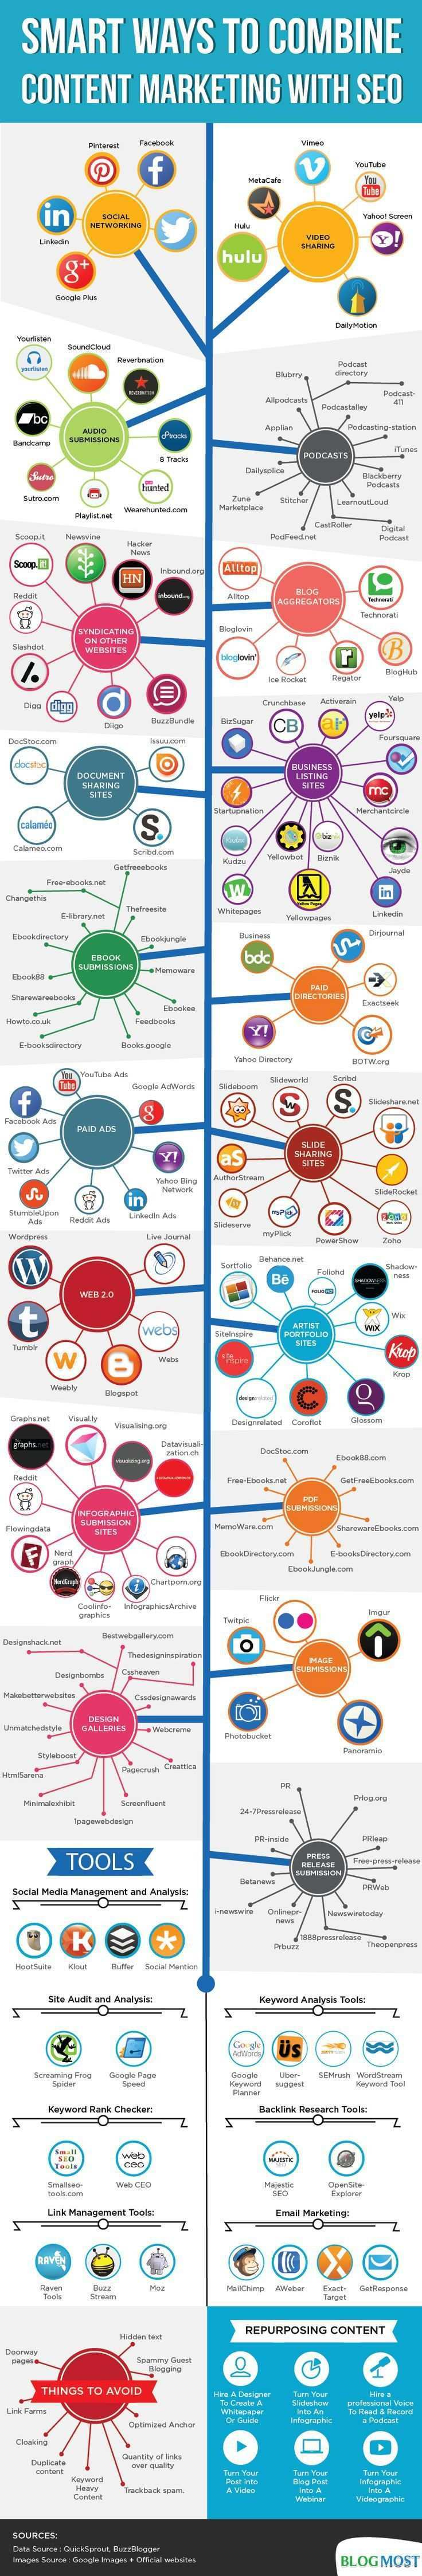 Seo Content Marketing Combined Webmag Co Content Marketing Seo Marketing Marketing